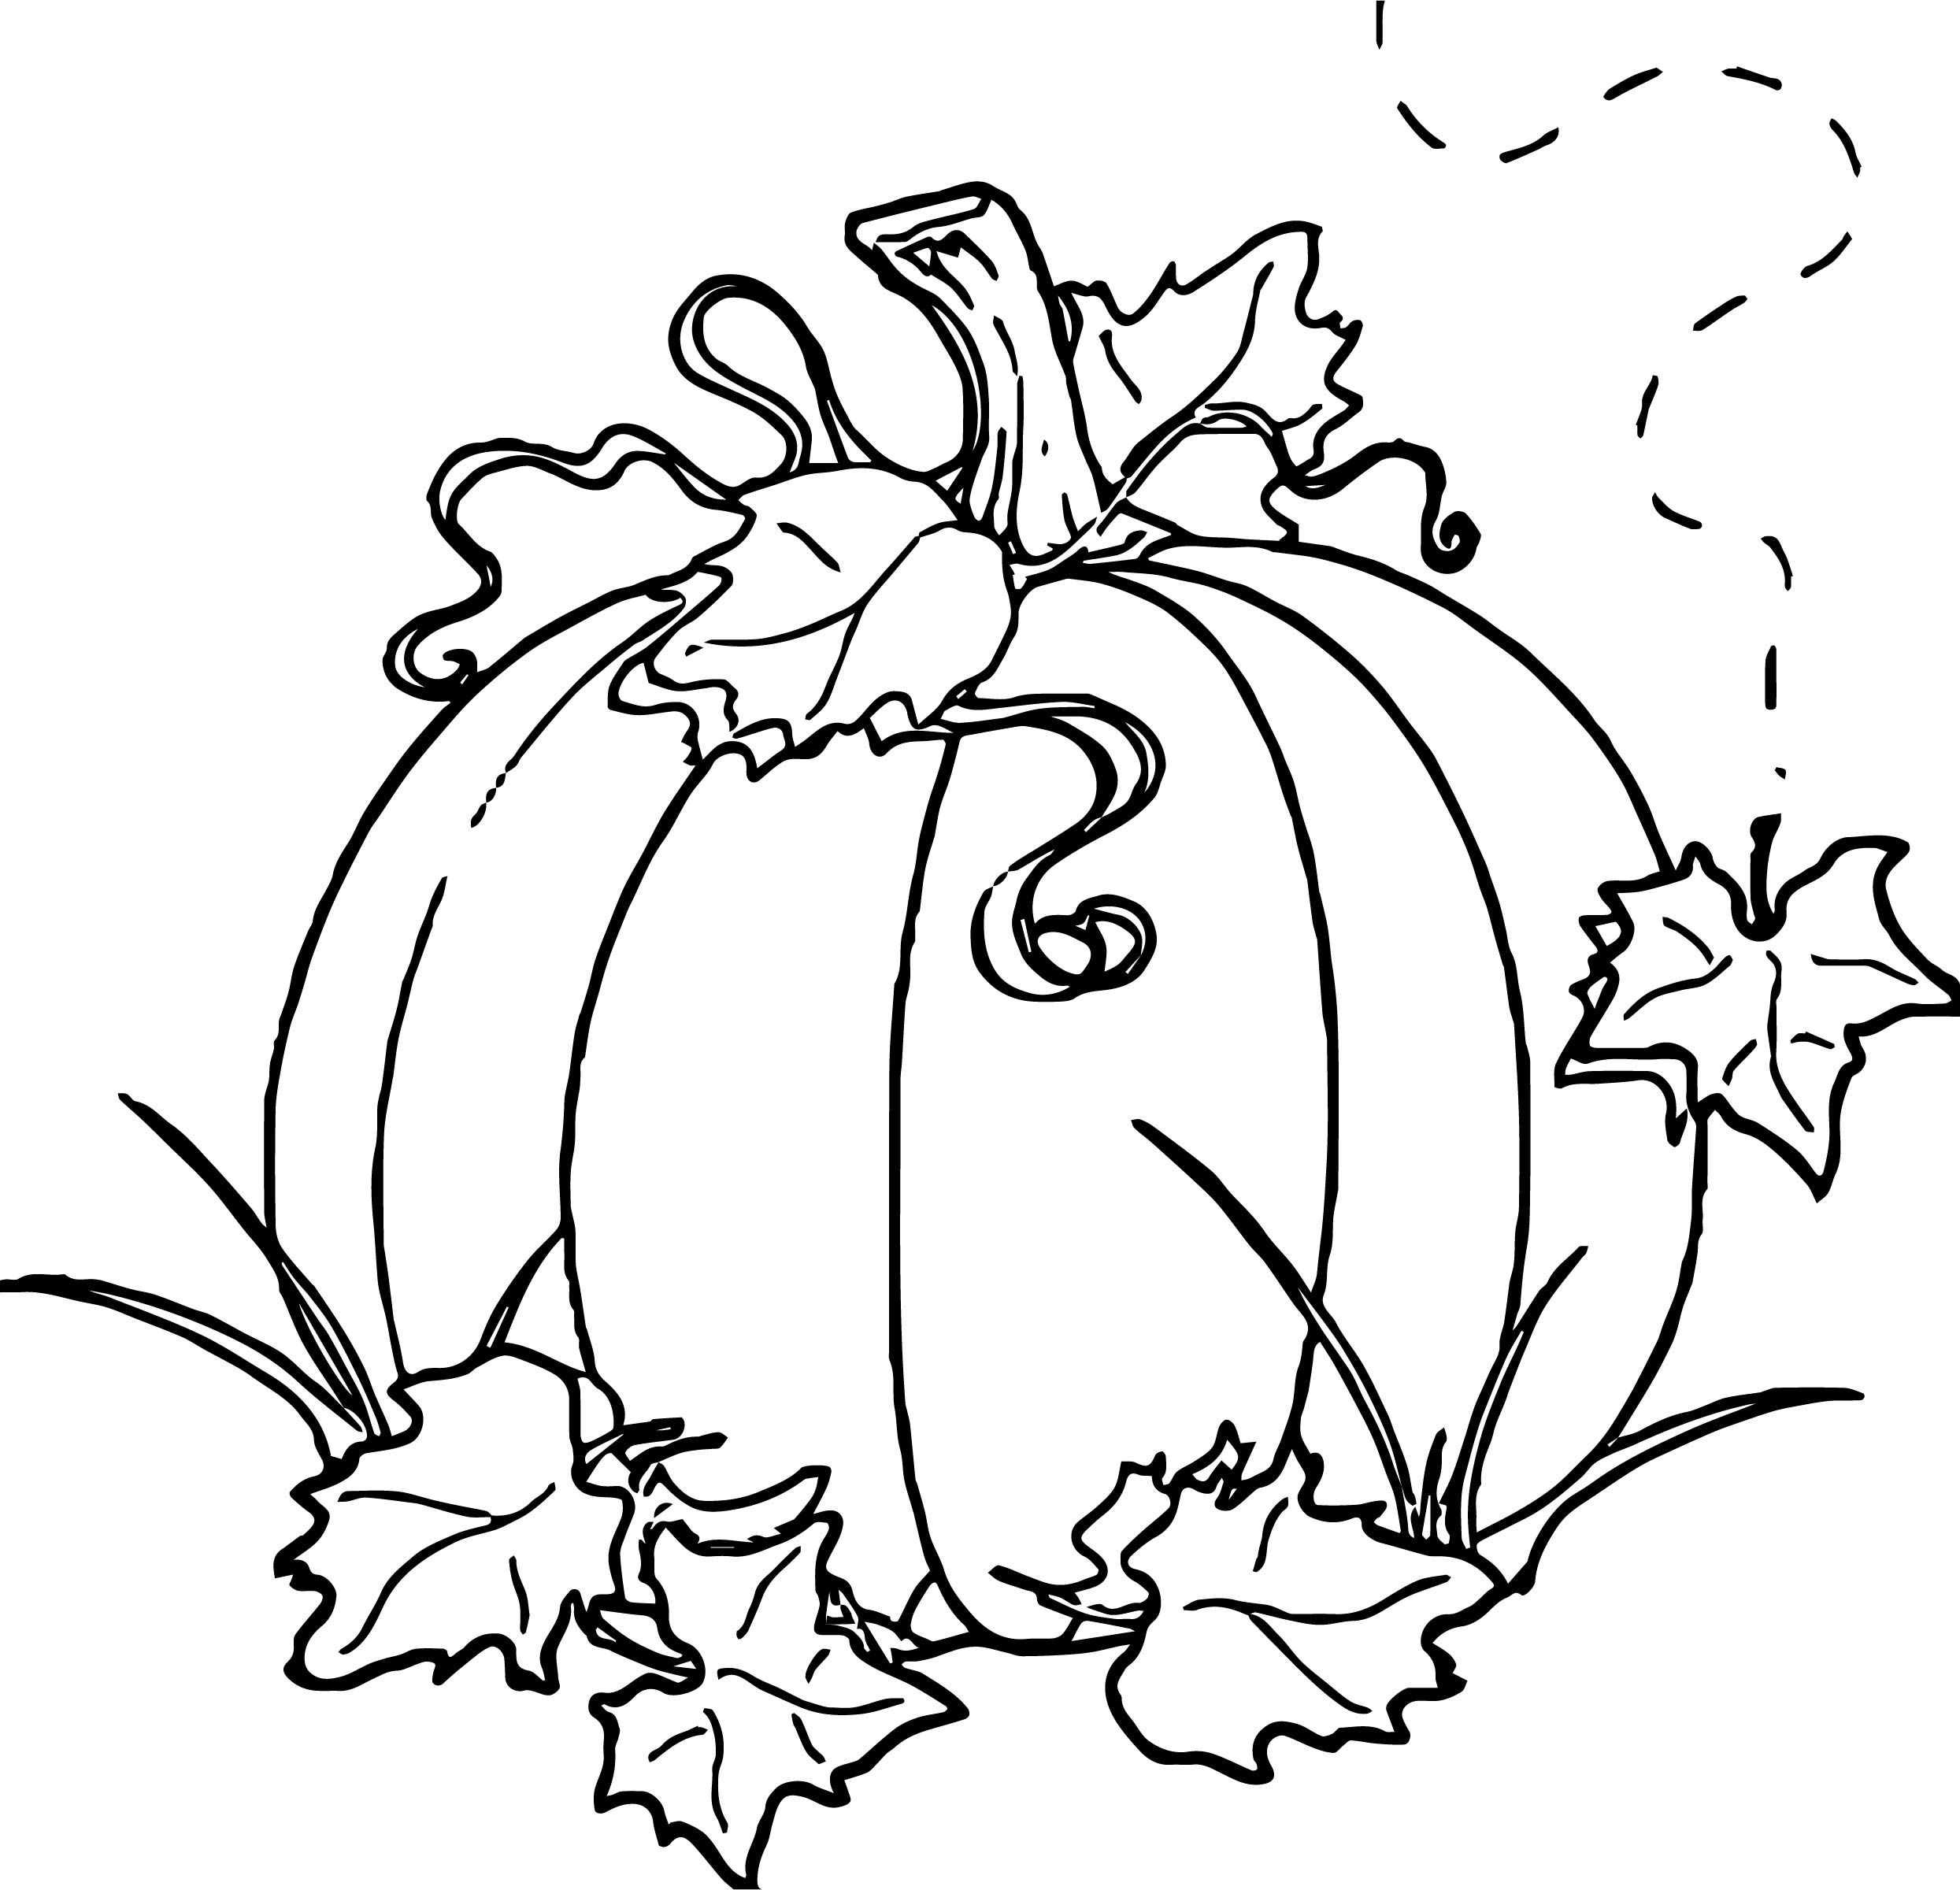 Awesome Free Autumn Pumpkin Coloring Page Pumpkin Coloring Pages Fall Coloring Pages Pumpkin Drawing